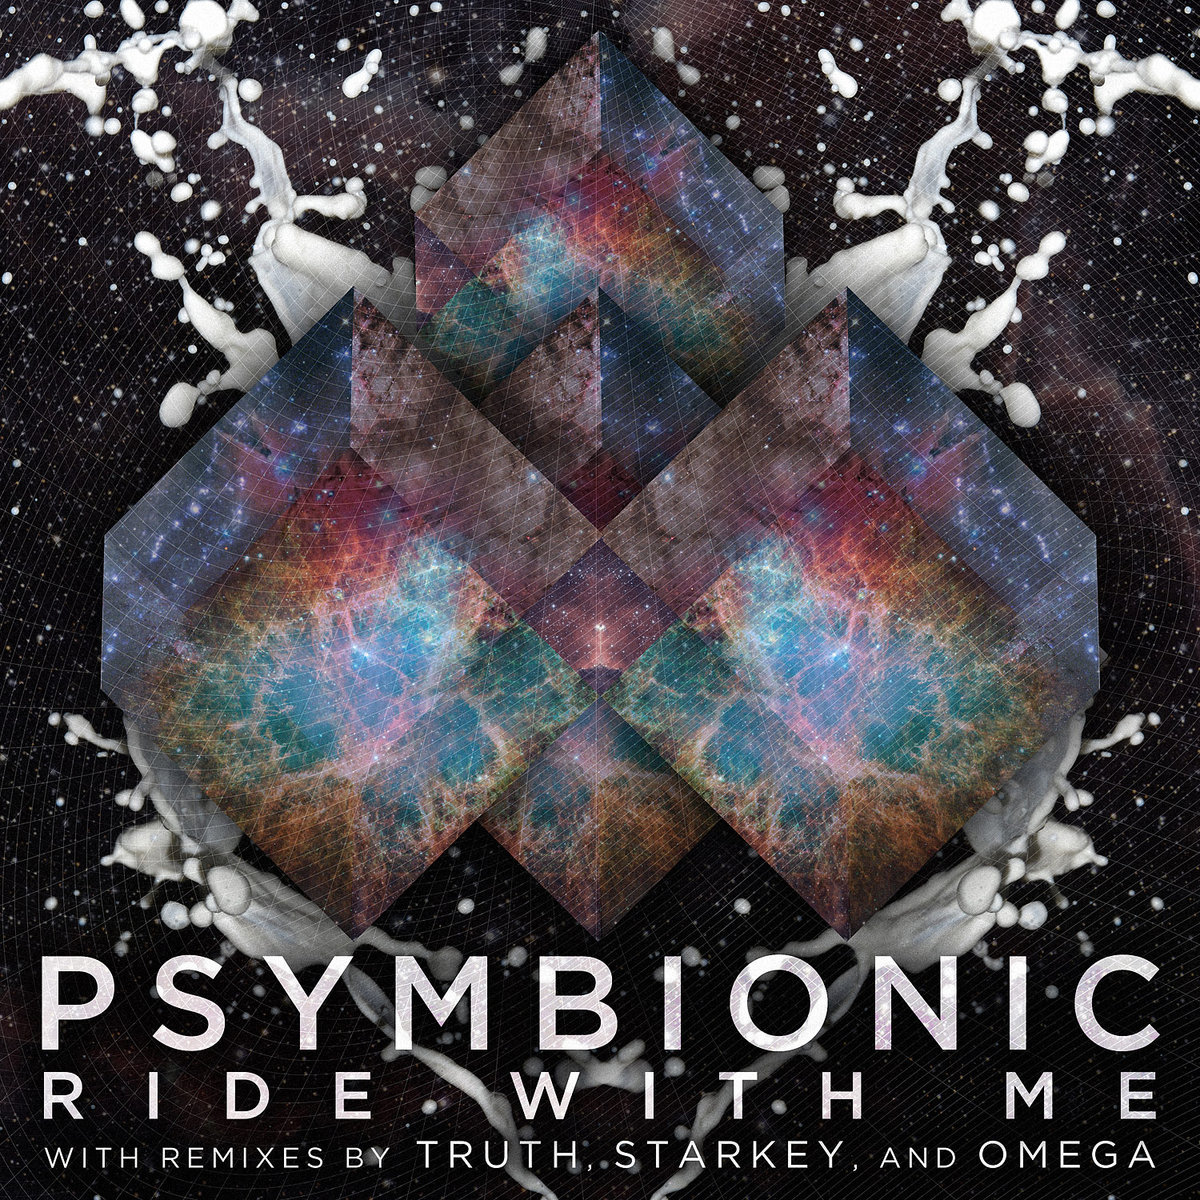 Psymbionic - Potential @ 'Ride With Me' album (electronic, dubstep)